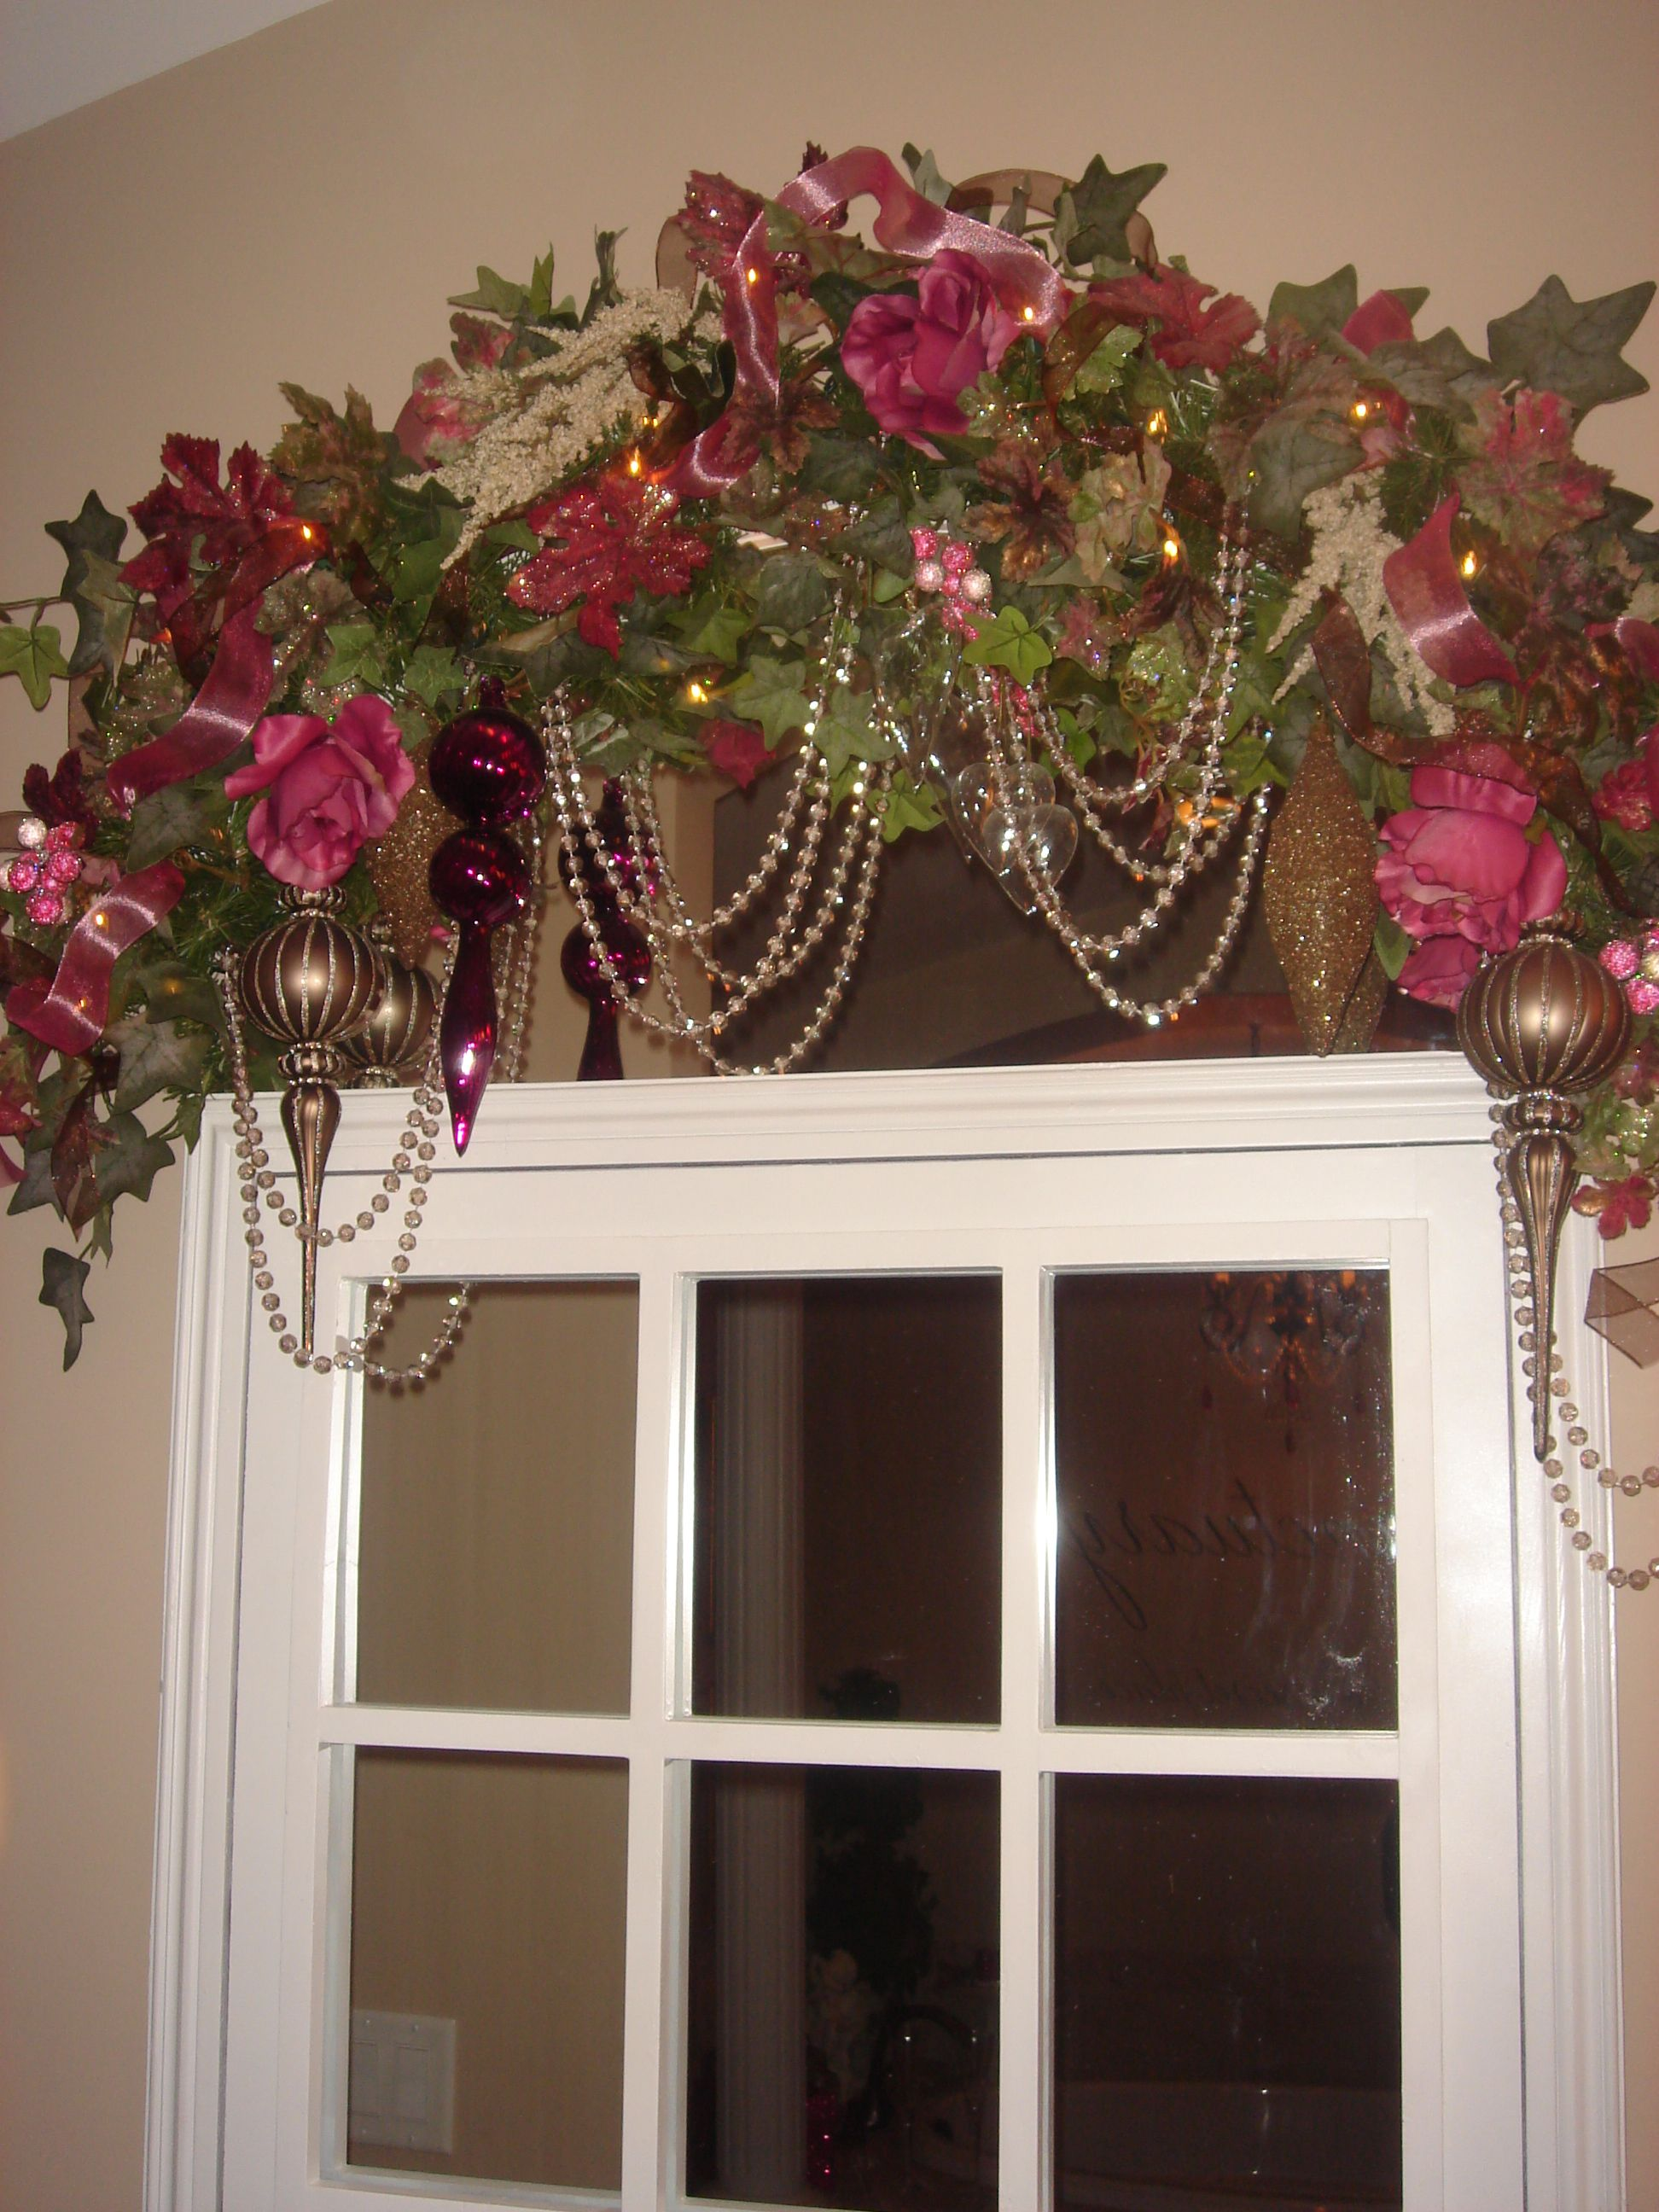 Pin By Connie J On Christmas Decorating Christmas Swags Christmas Interiors Diy Christmas Garland Mantle